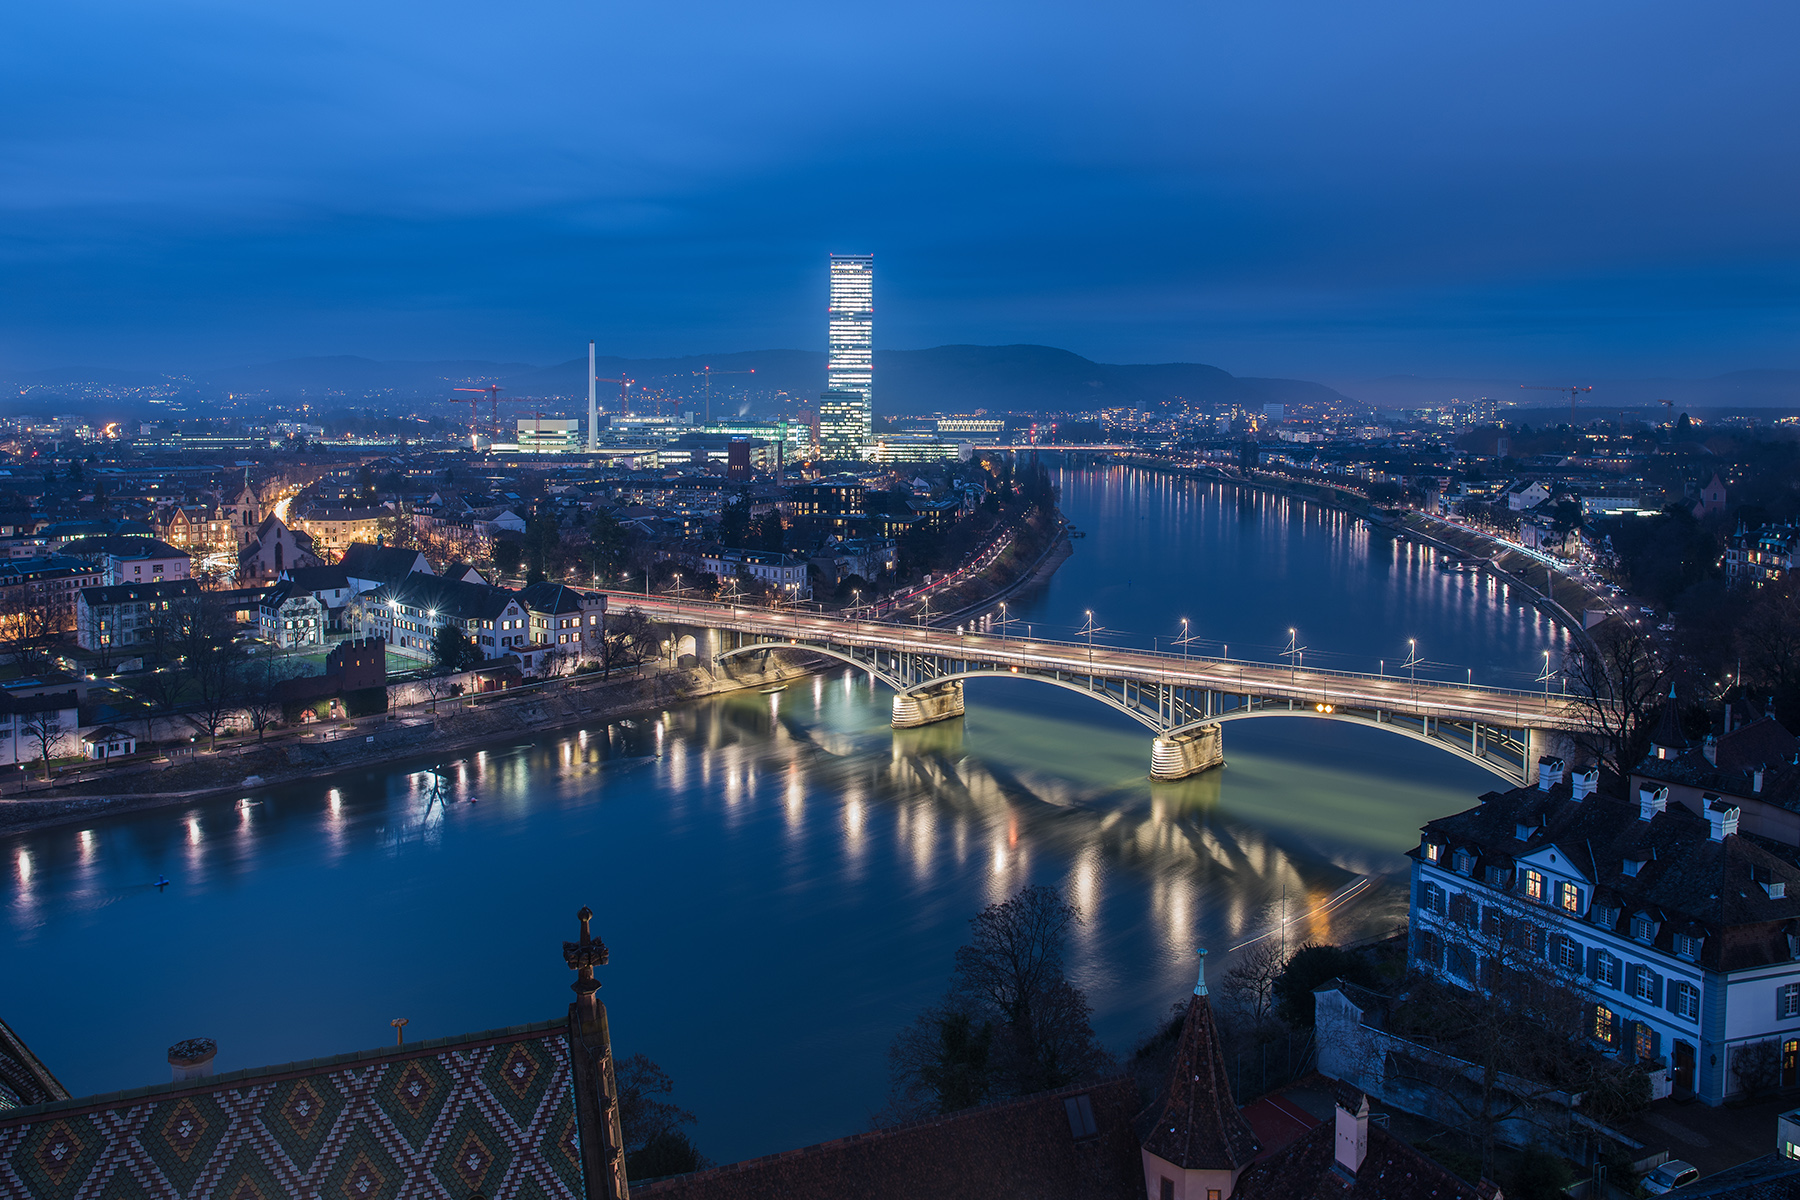 The Basel skyline at night